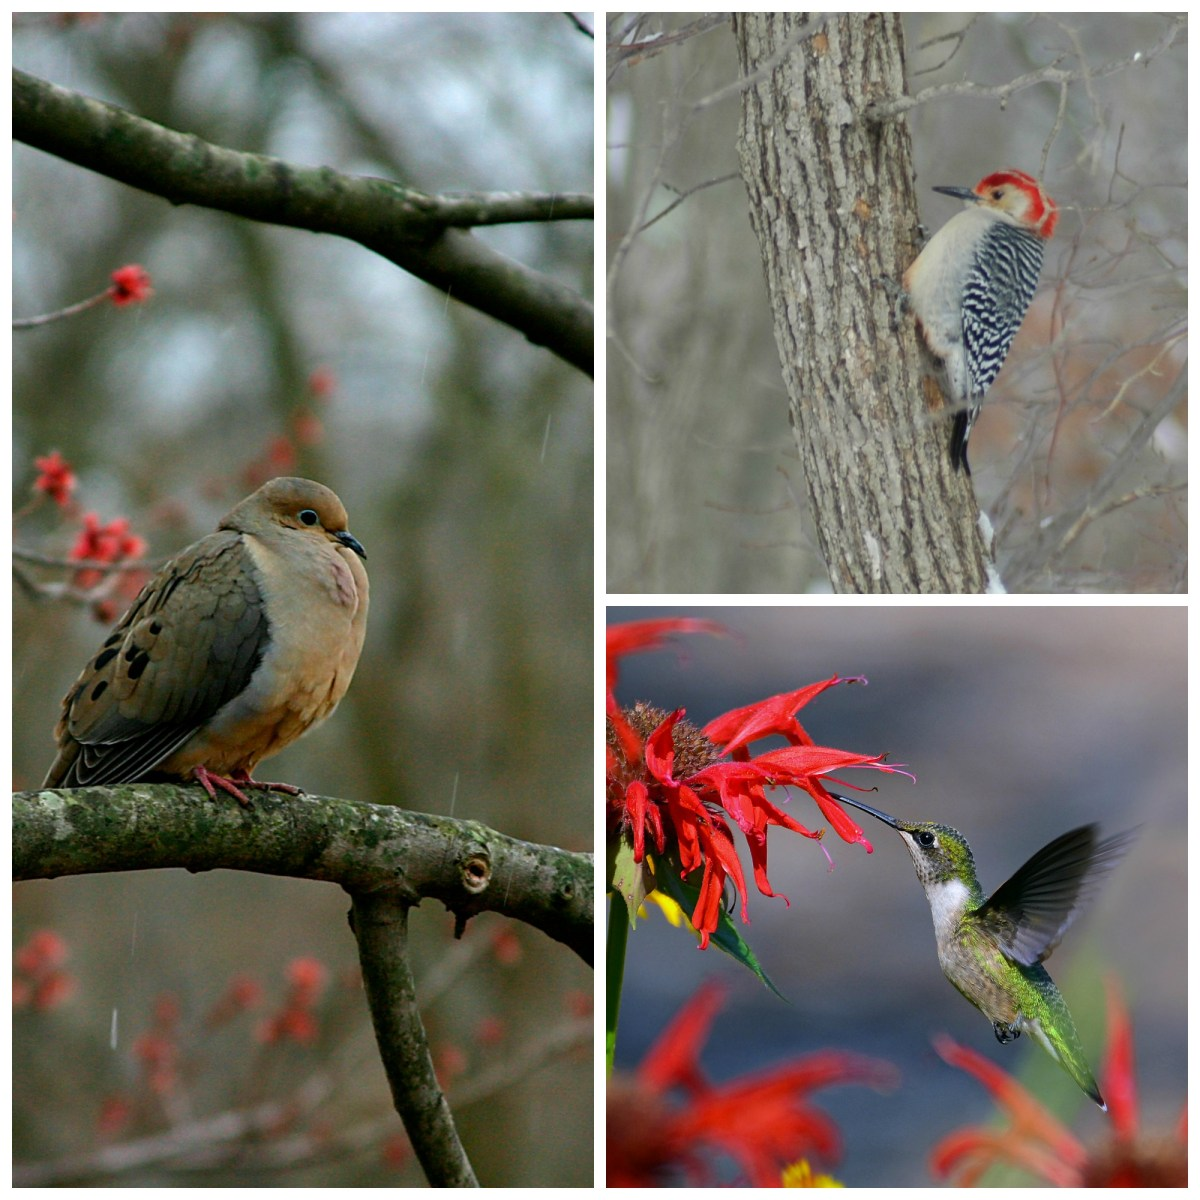 Are you a hummingbird, a woodpecker, or a dove?